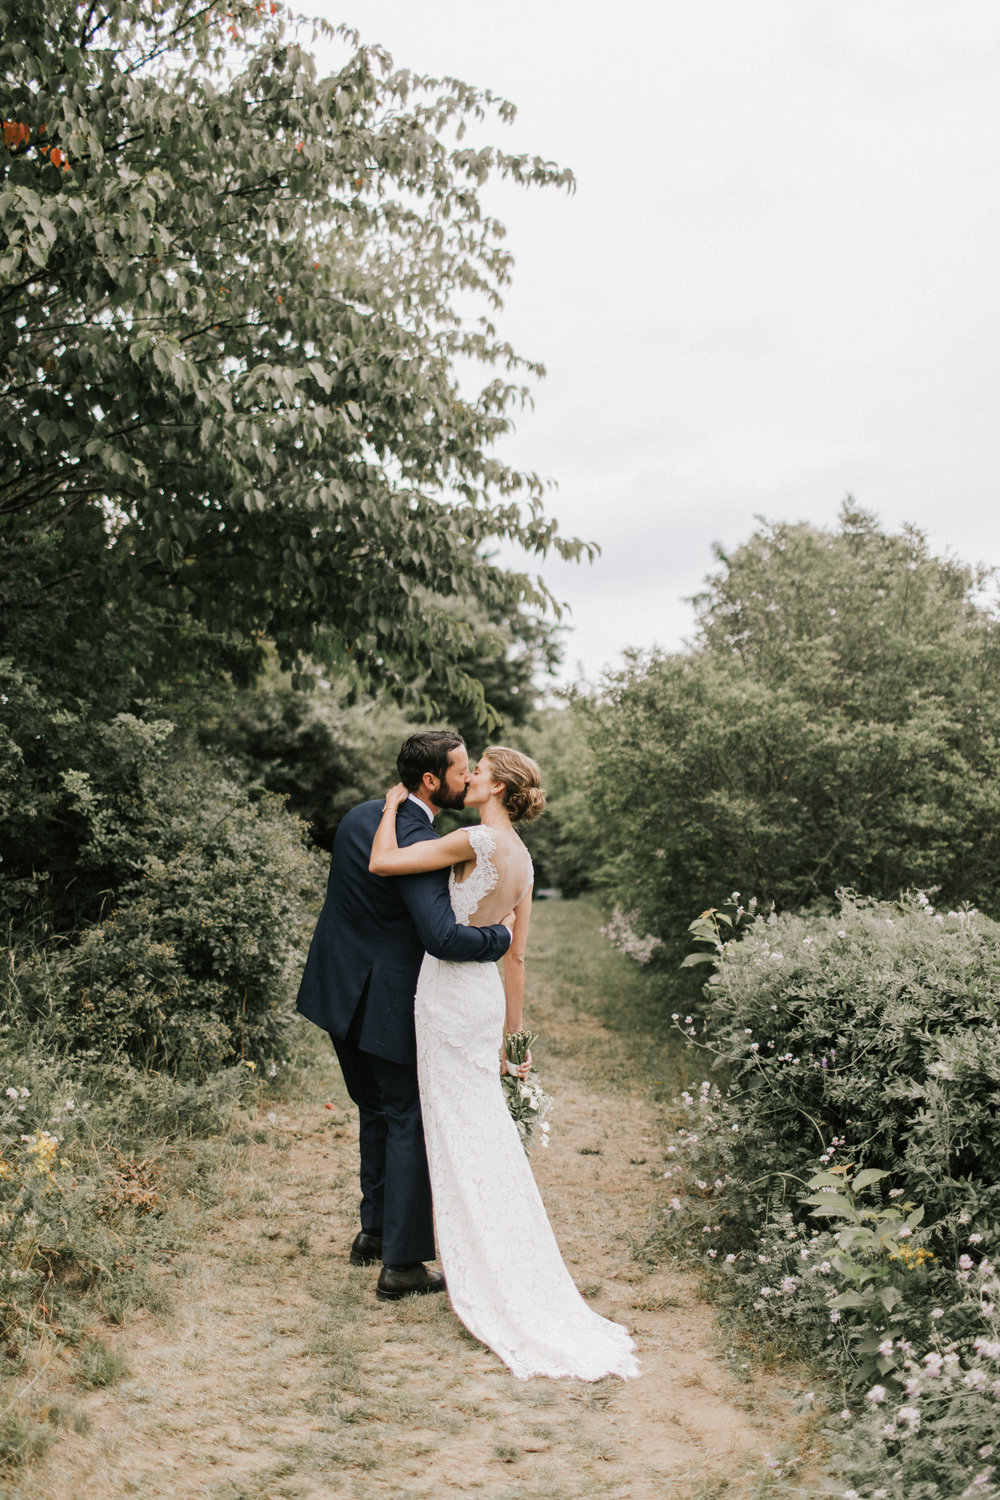 0714_CourtneyEllisWedding_JamieMercurioPhoto2018-0990.jpg